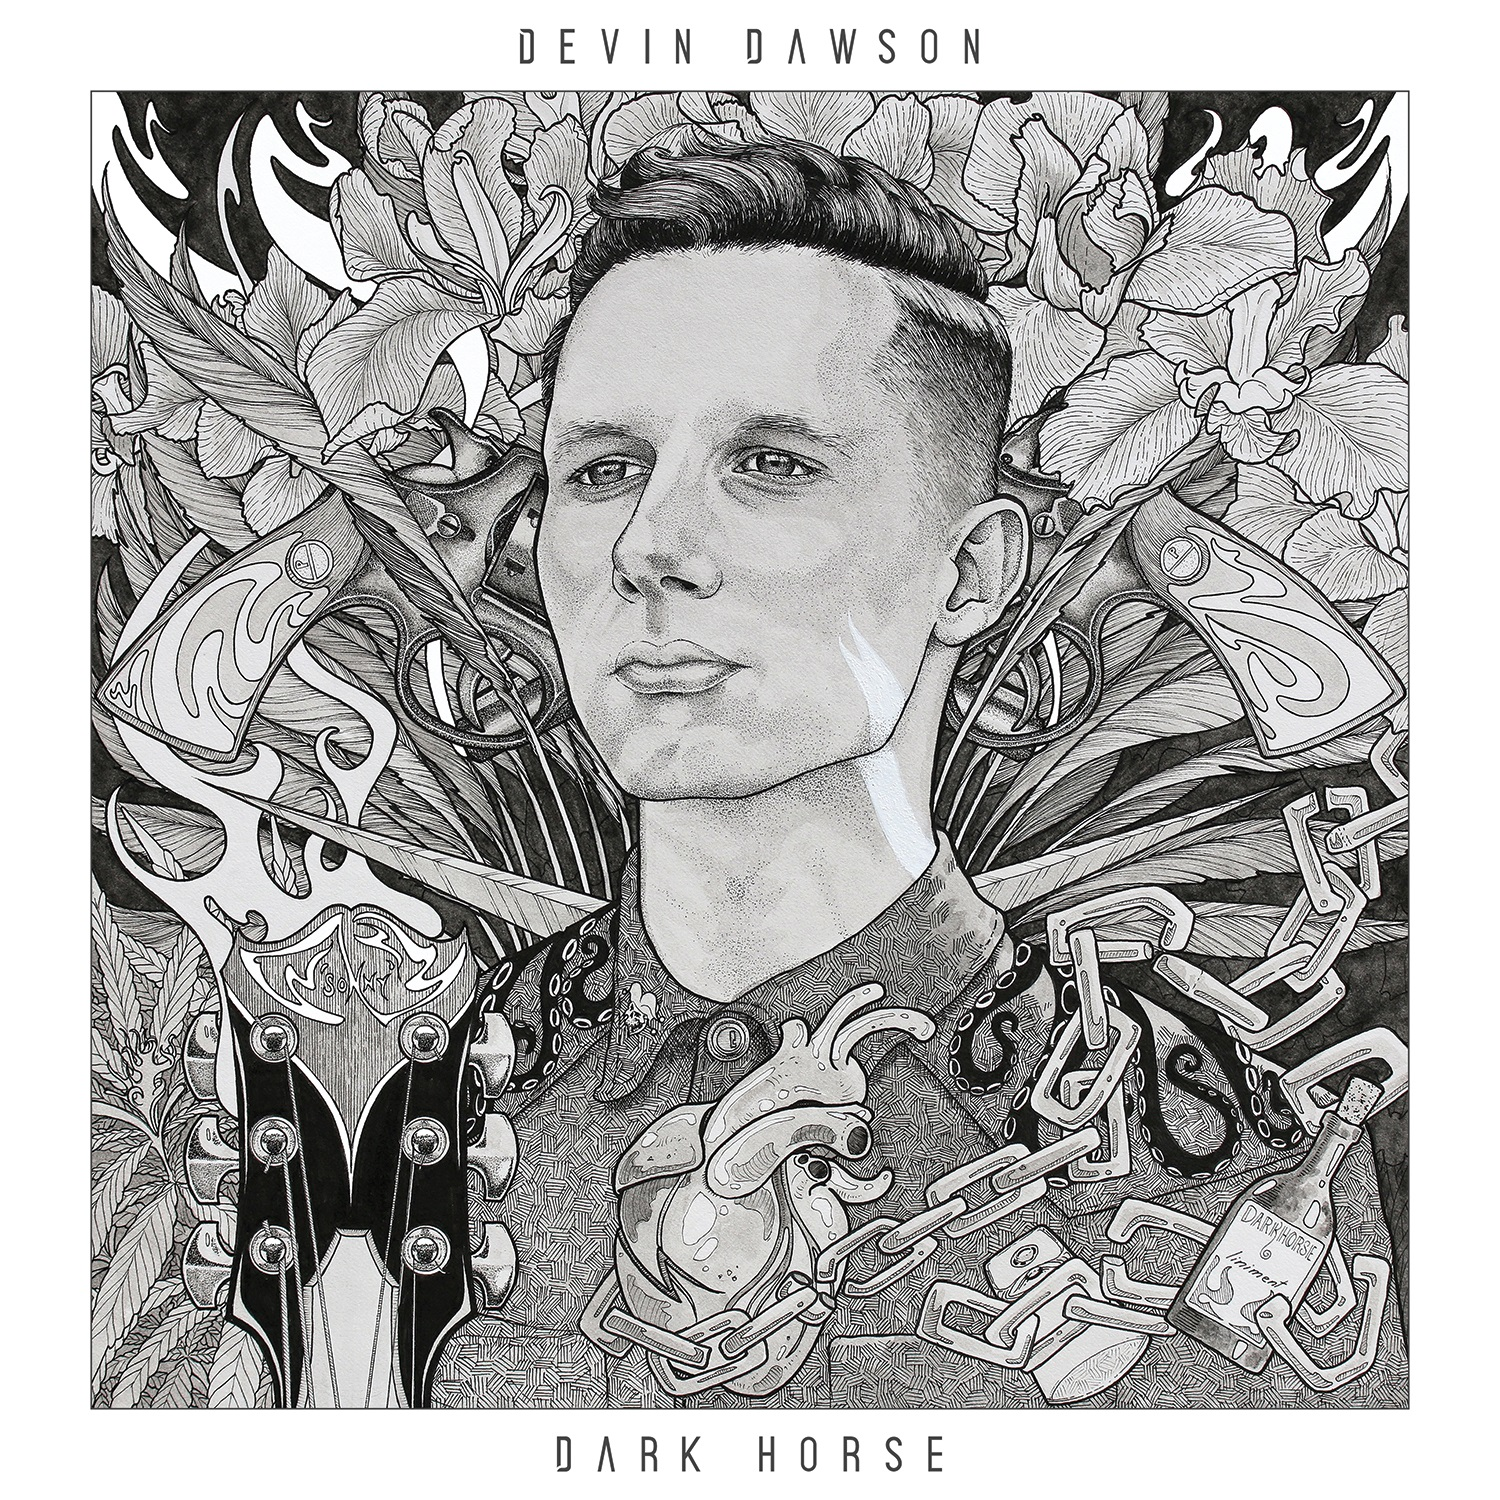 Devin Dawson; Cover art courtesy Warner Music Nashville